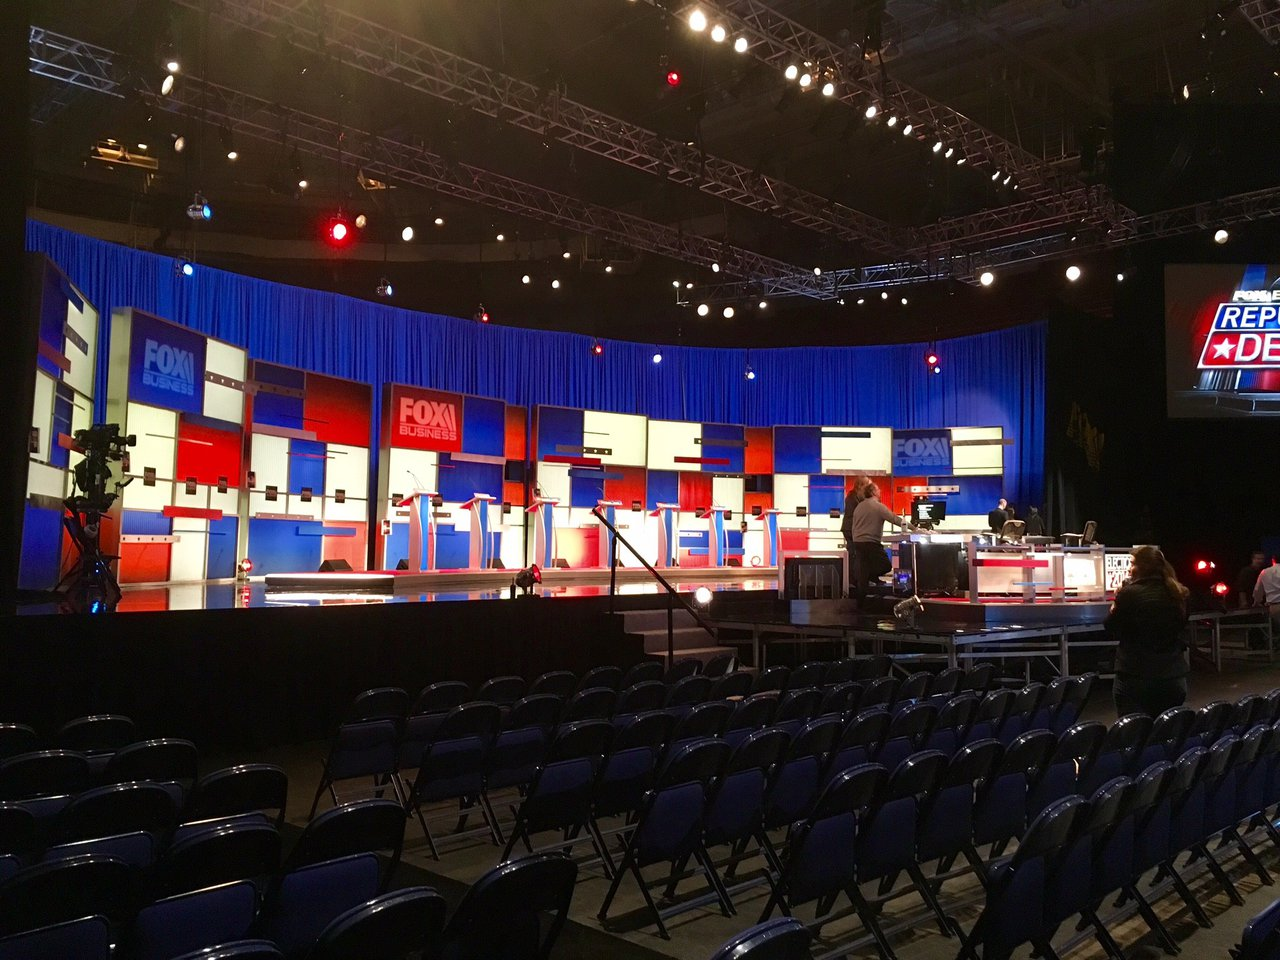 Fox Presidential Debate photo 24551126599_6ec5157756_o.jpg